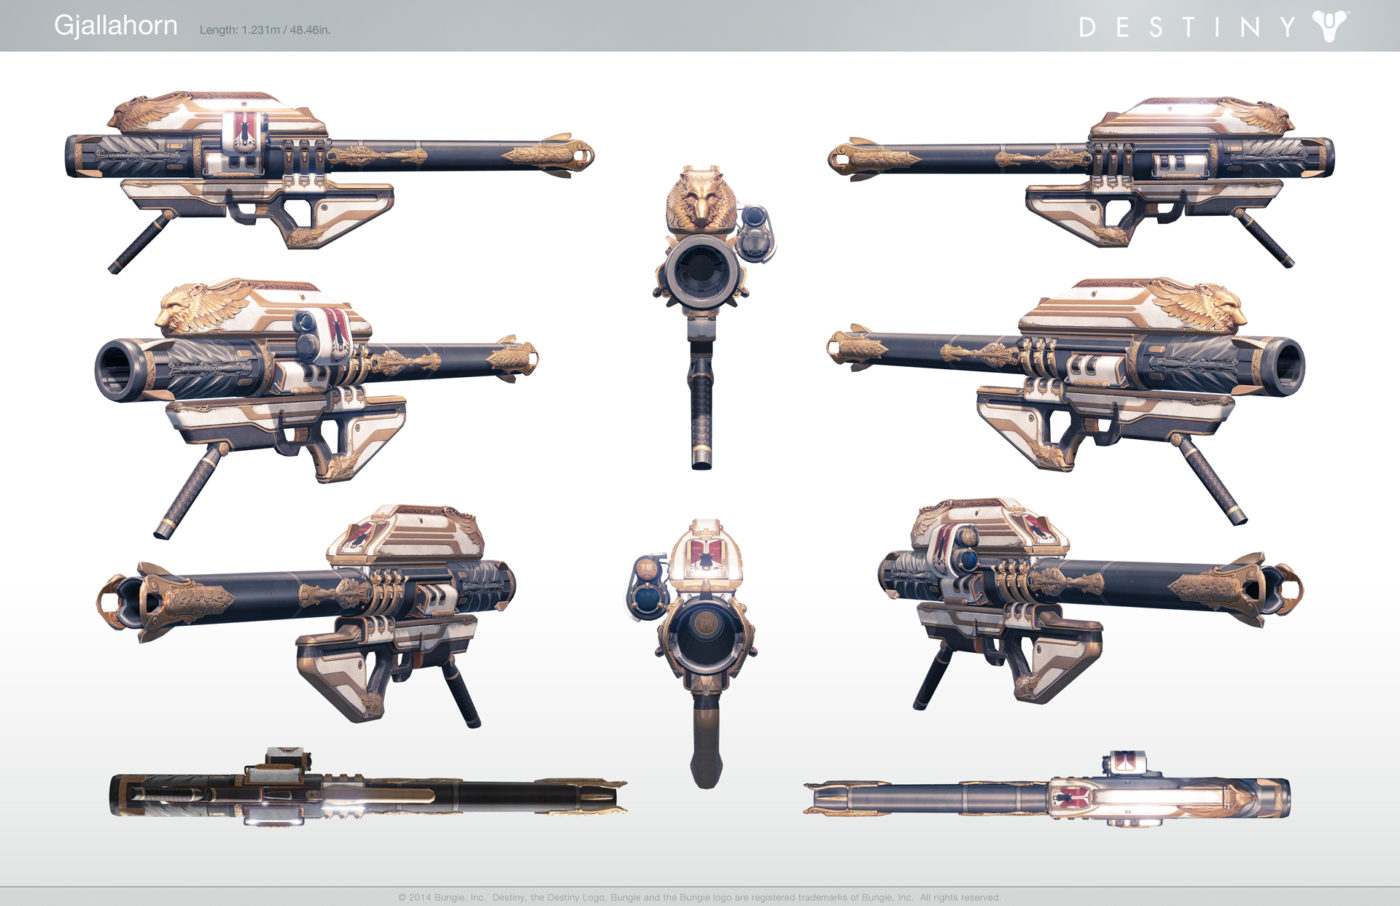 Dress Up As Your Favorite Guardian With This Handy Destiny Cosplay Guide MP1st